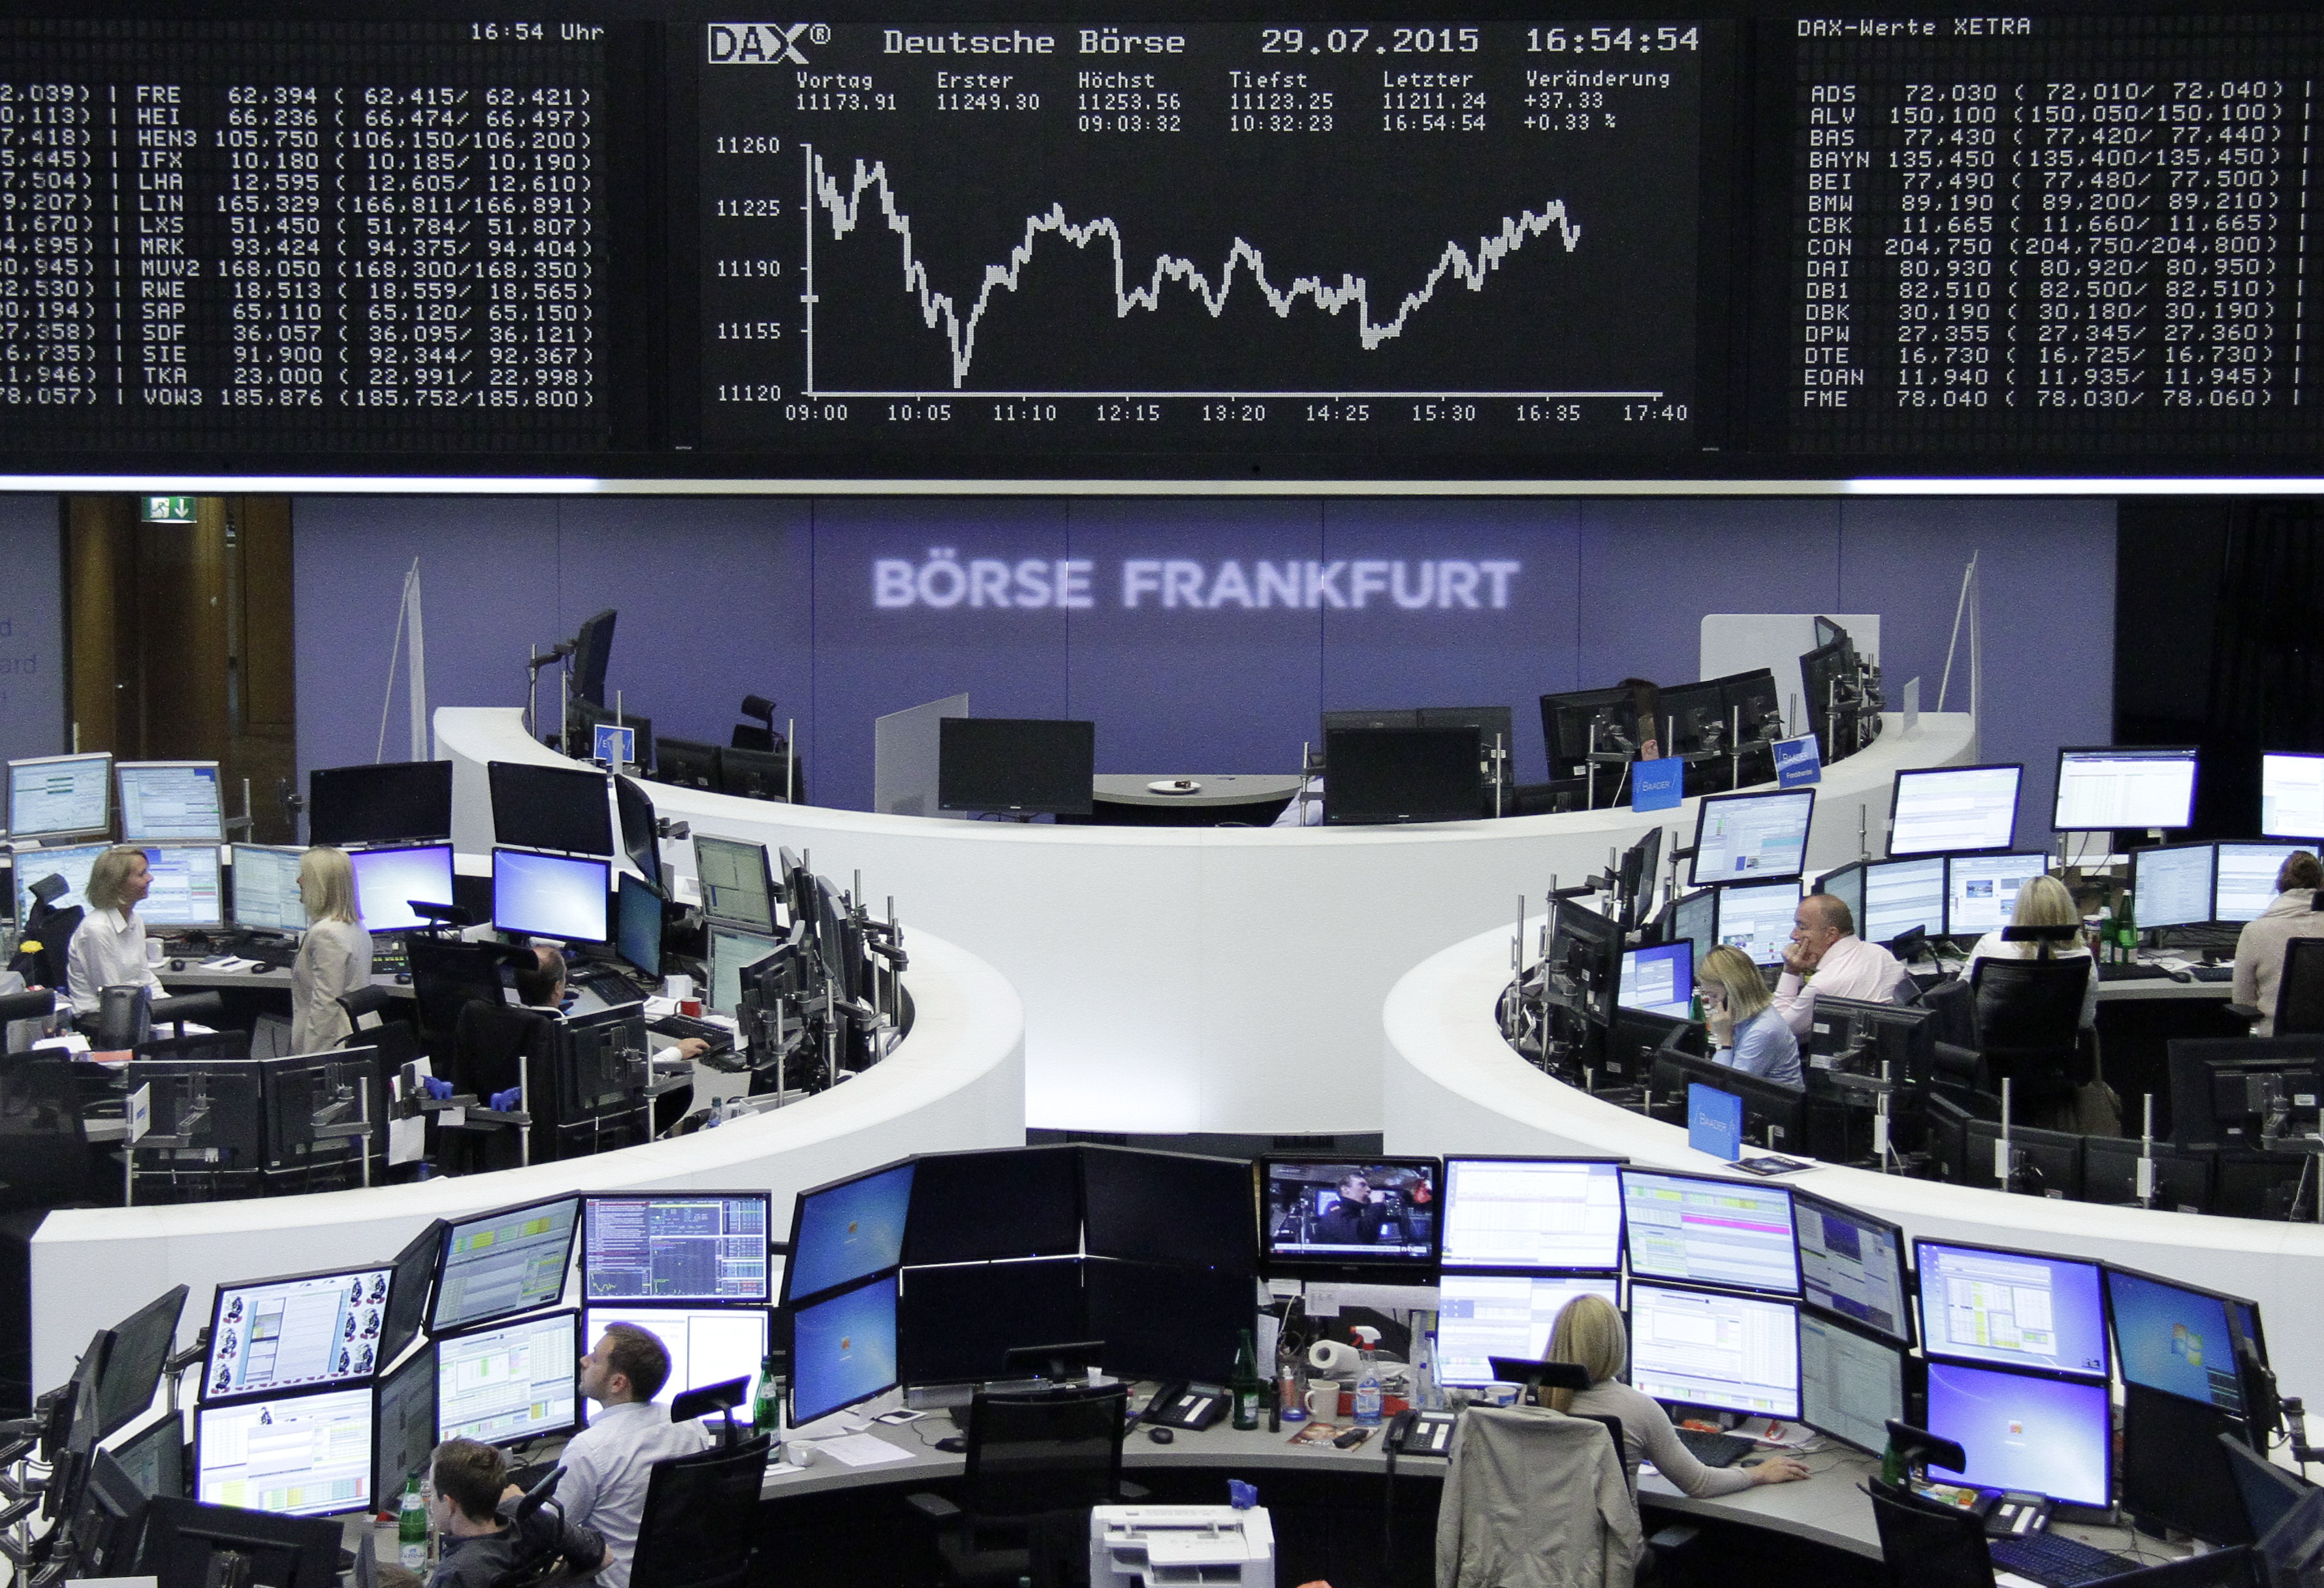 Traders are pictured at their desks in front of the DAX board at the stock exchange in Frankfurt, Germany July 29, 2015. REUTERS/Remote/Pawel Kopczynski